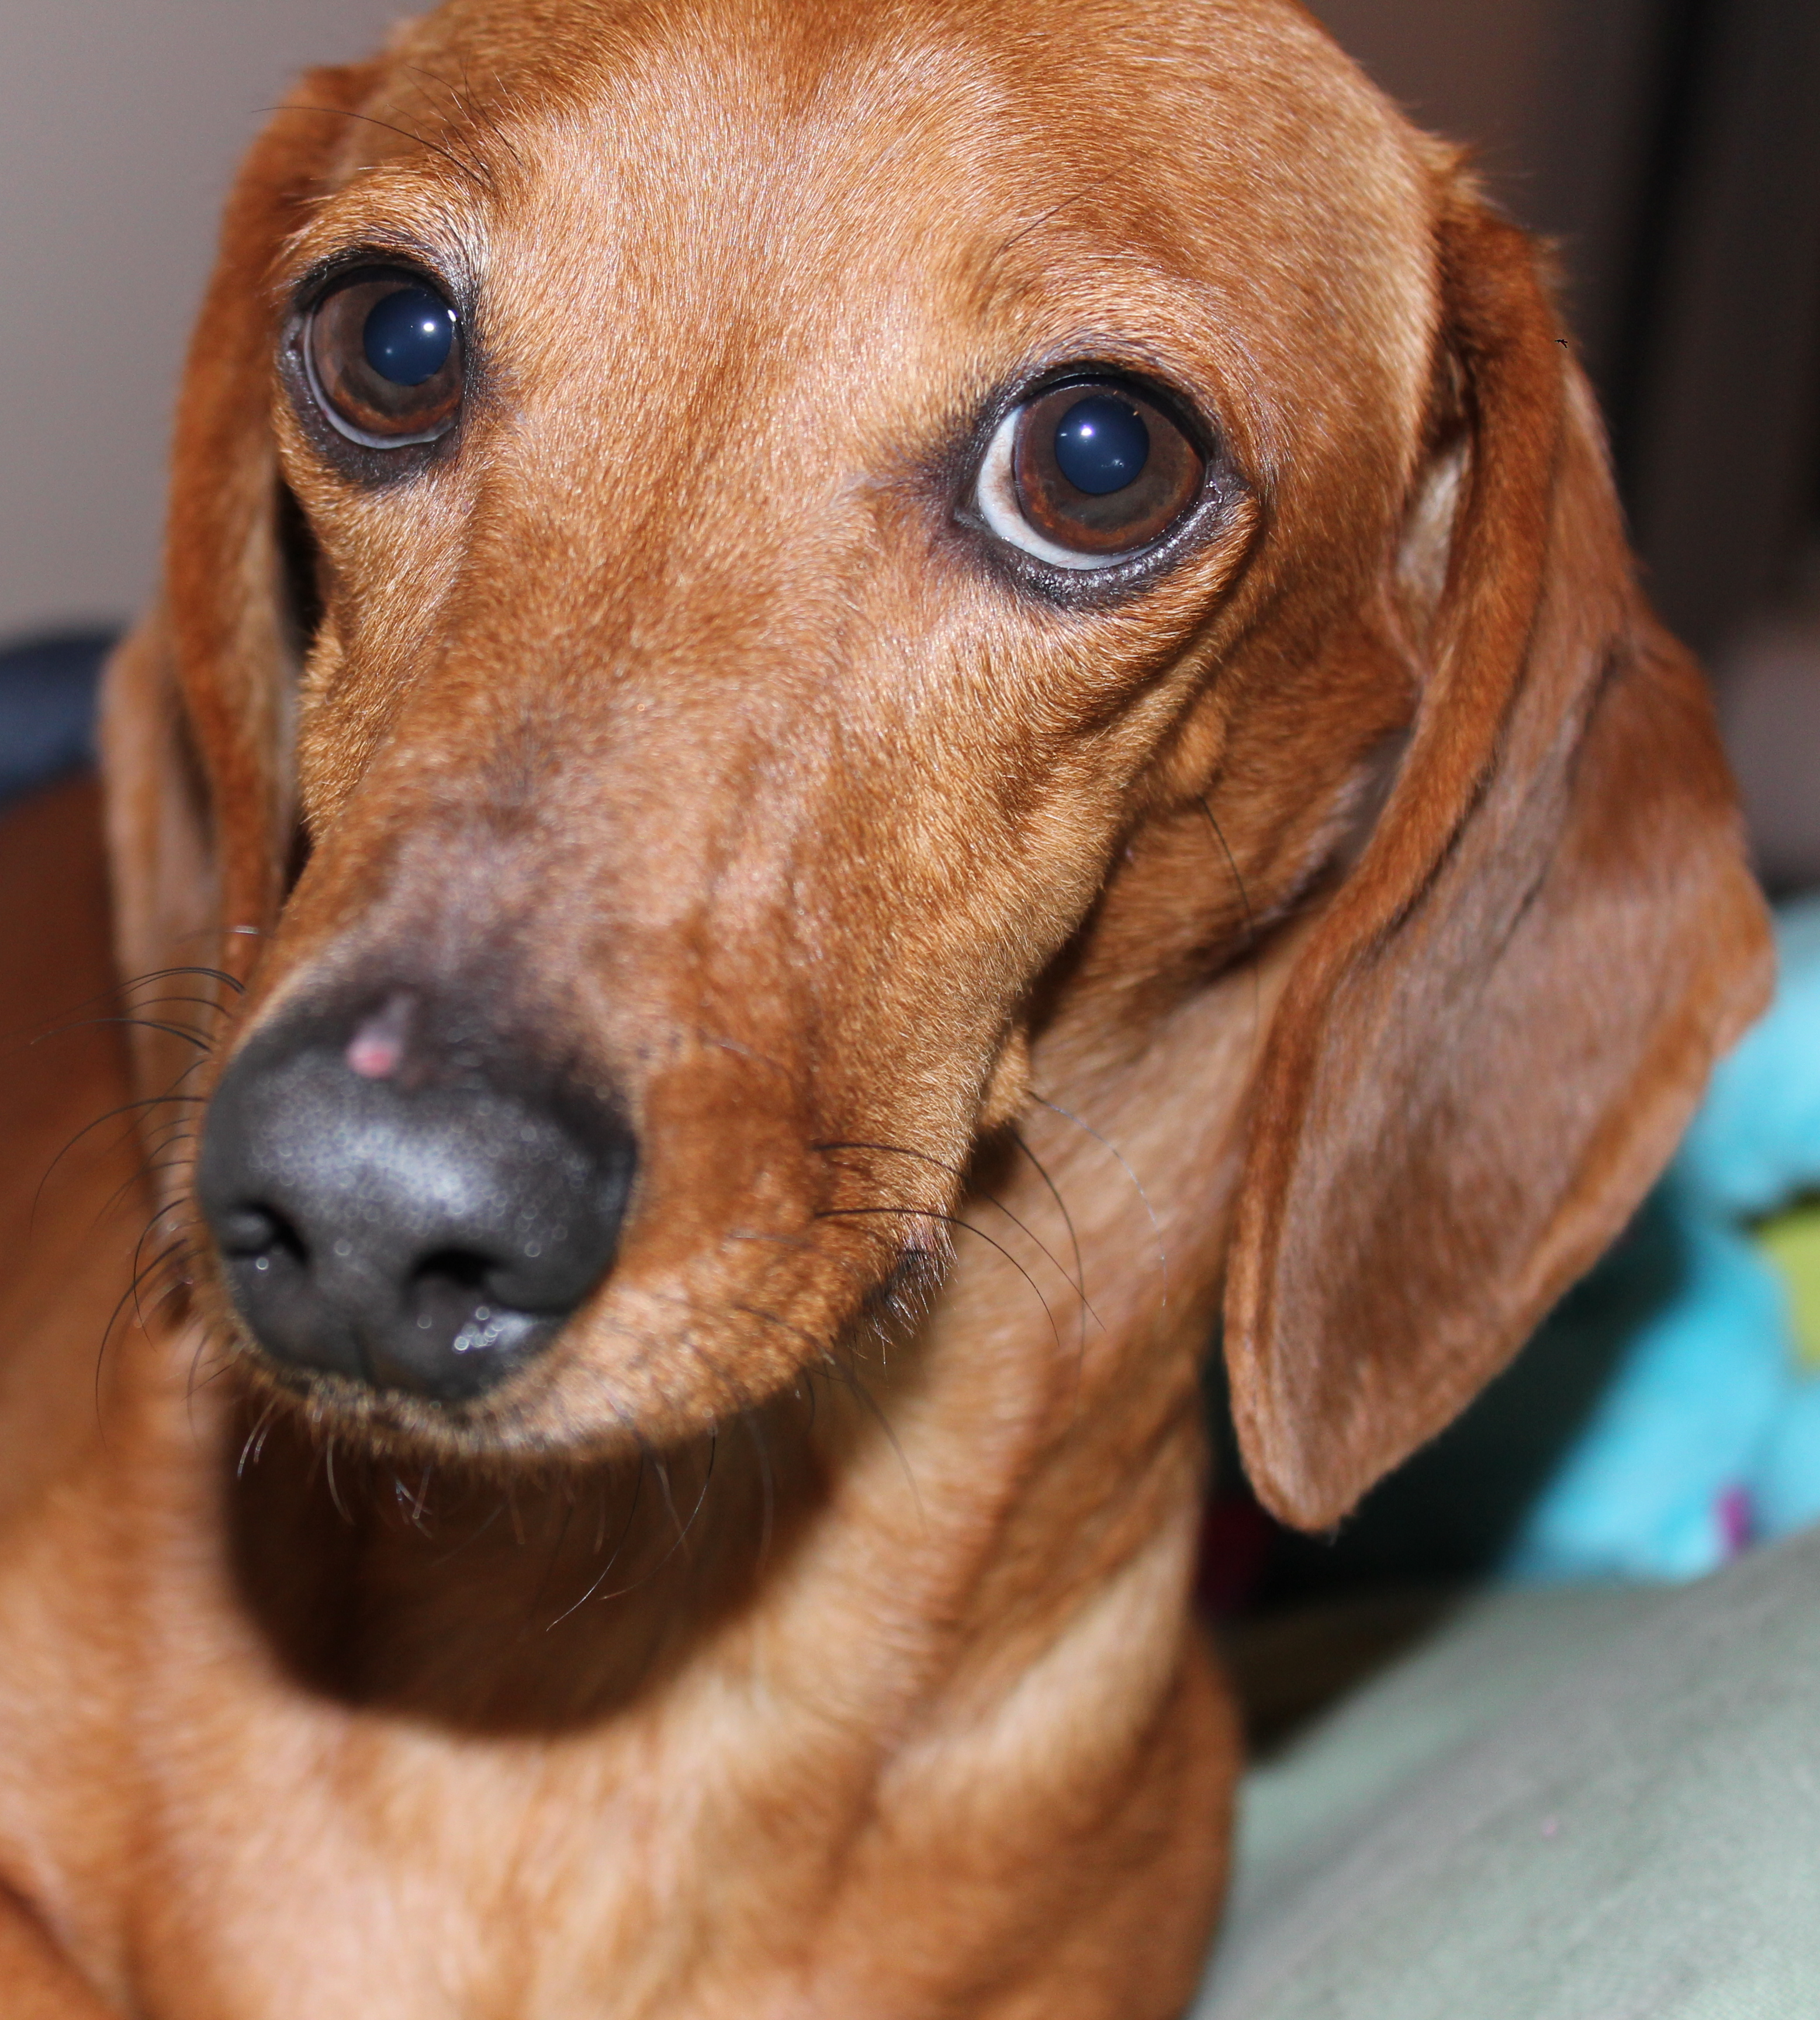 Dachshund - Pictures, Facts, and User Reviews   3114 x 3456 jpeg 4585kB